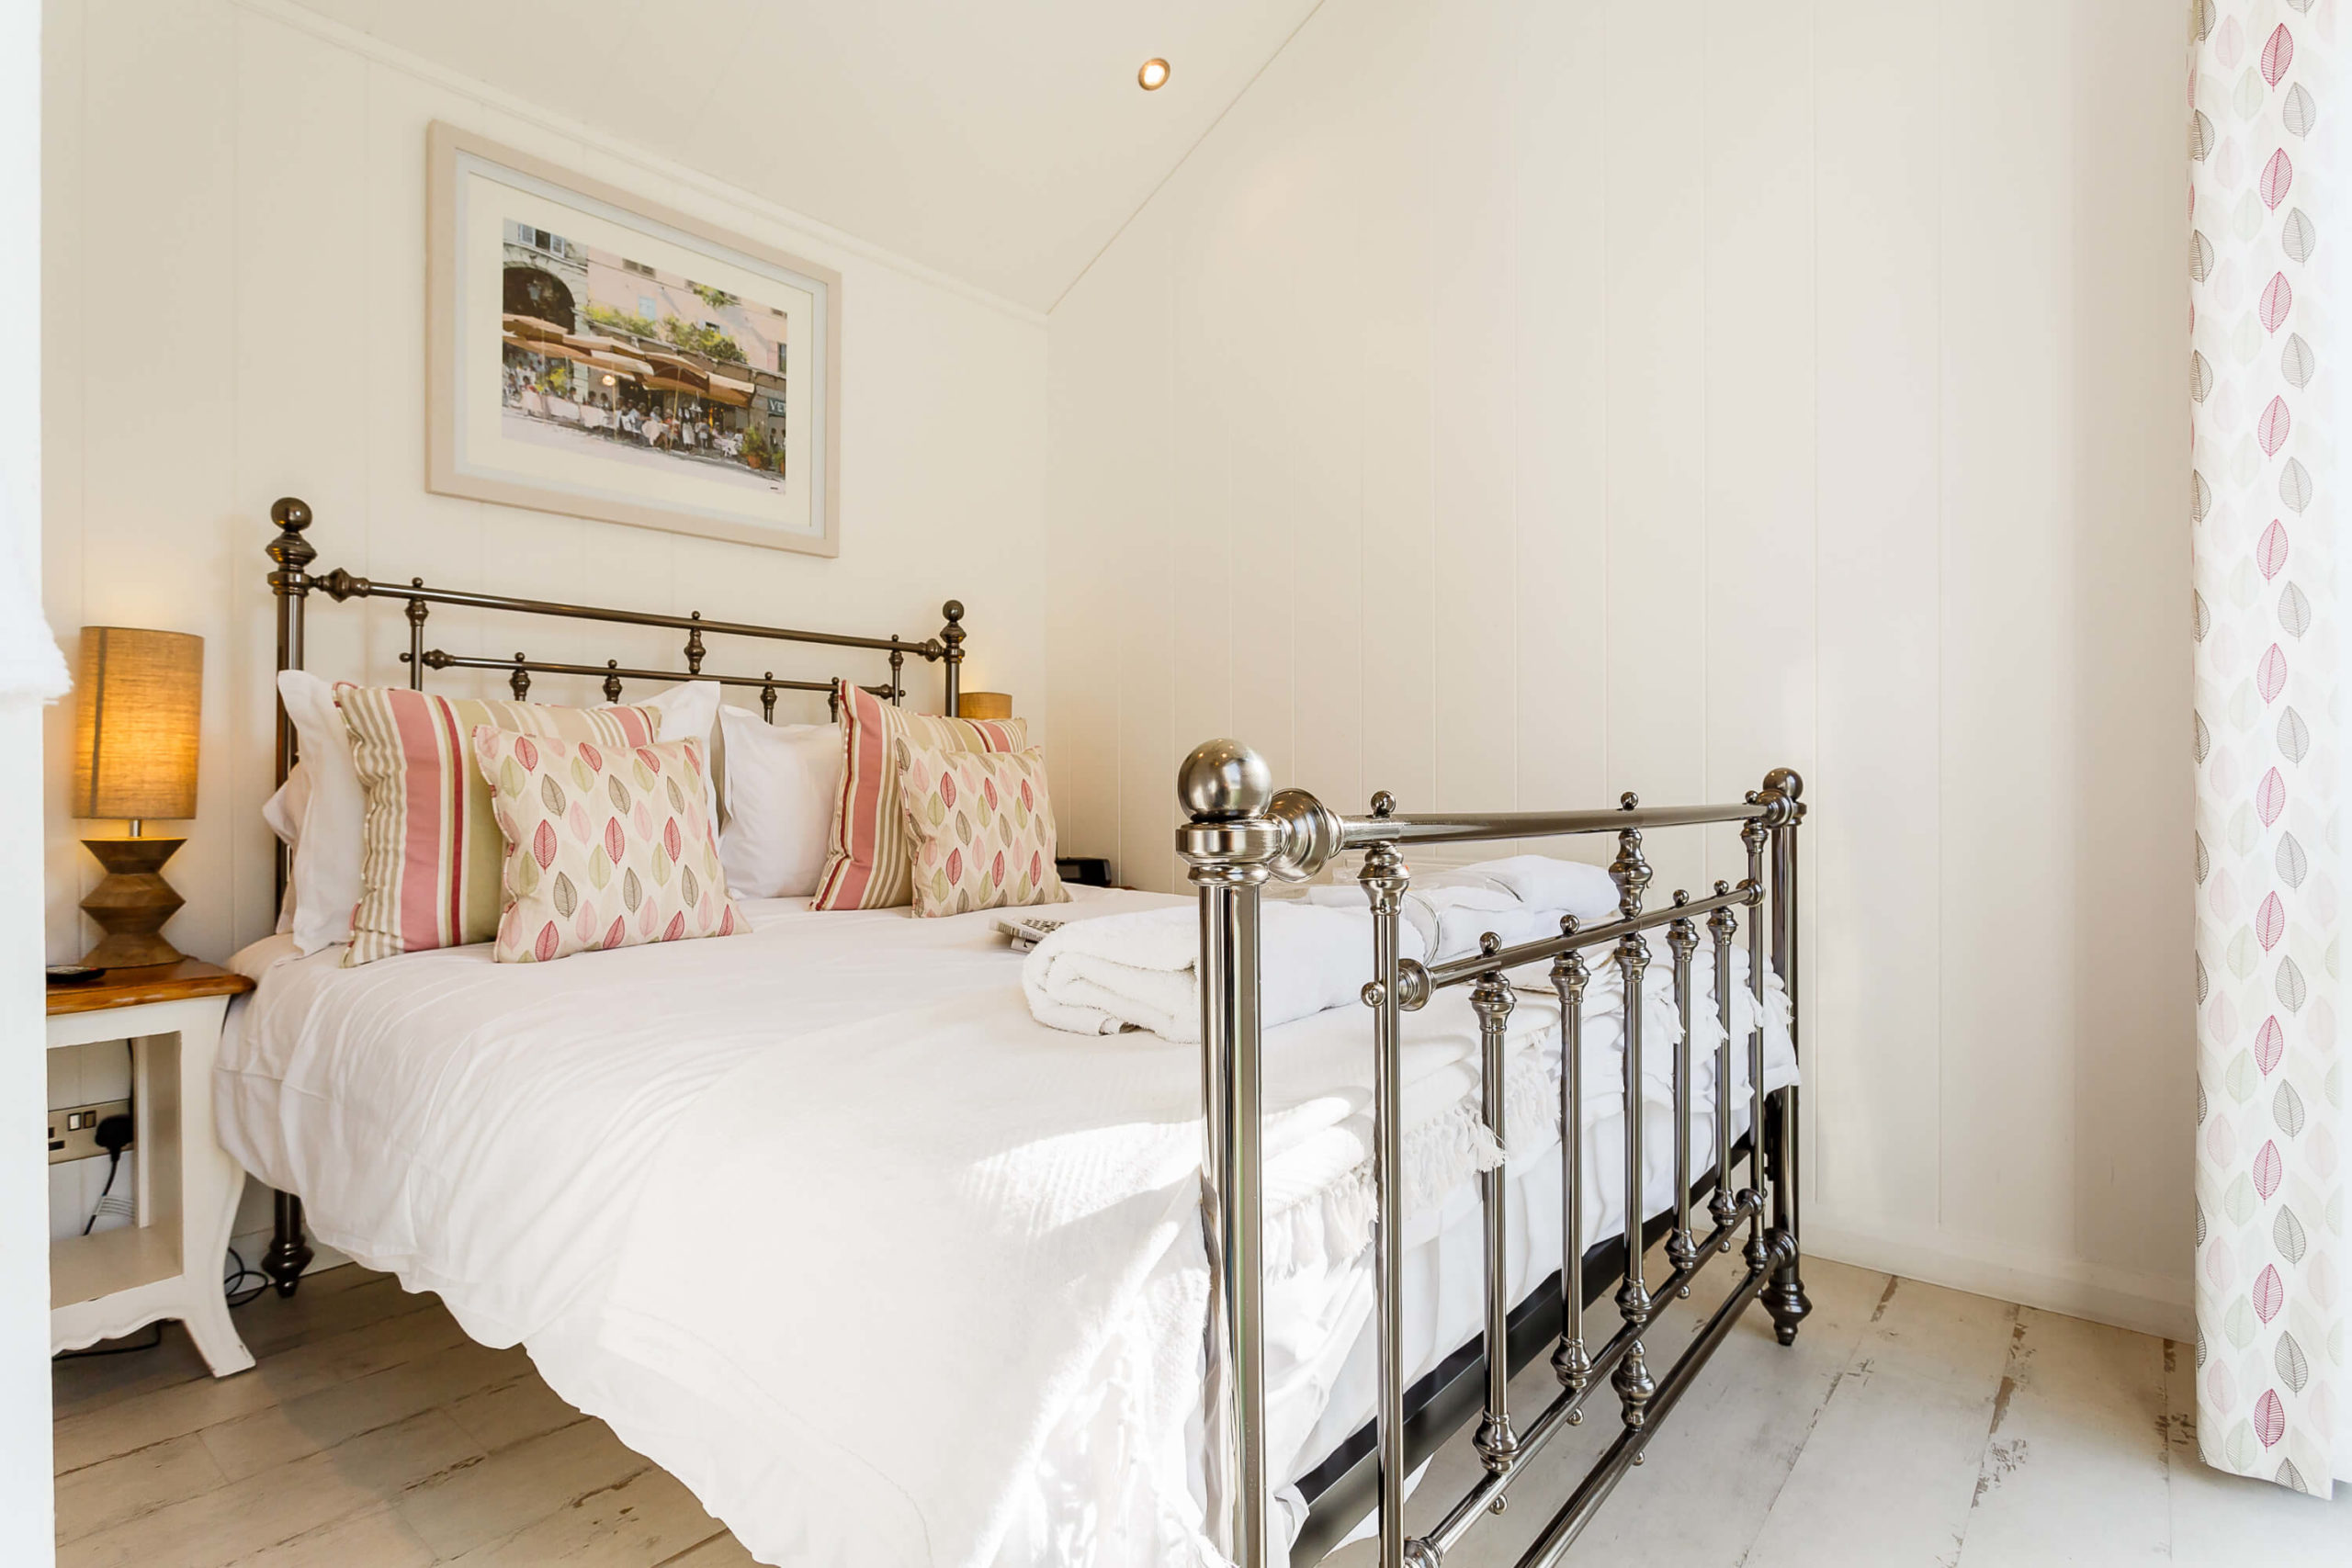 Interior shot of a bedroom in a beach hut